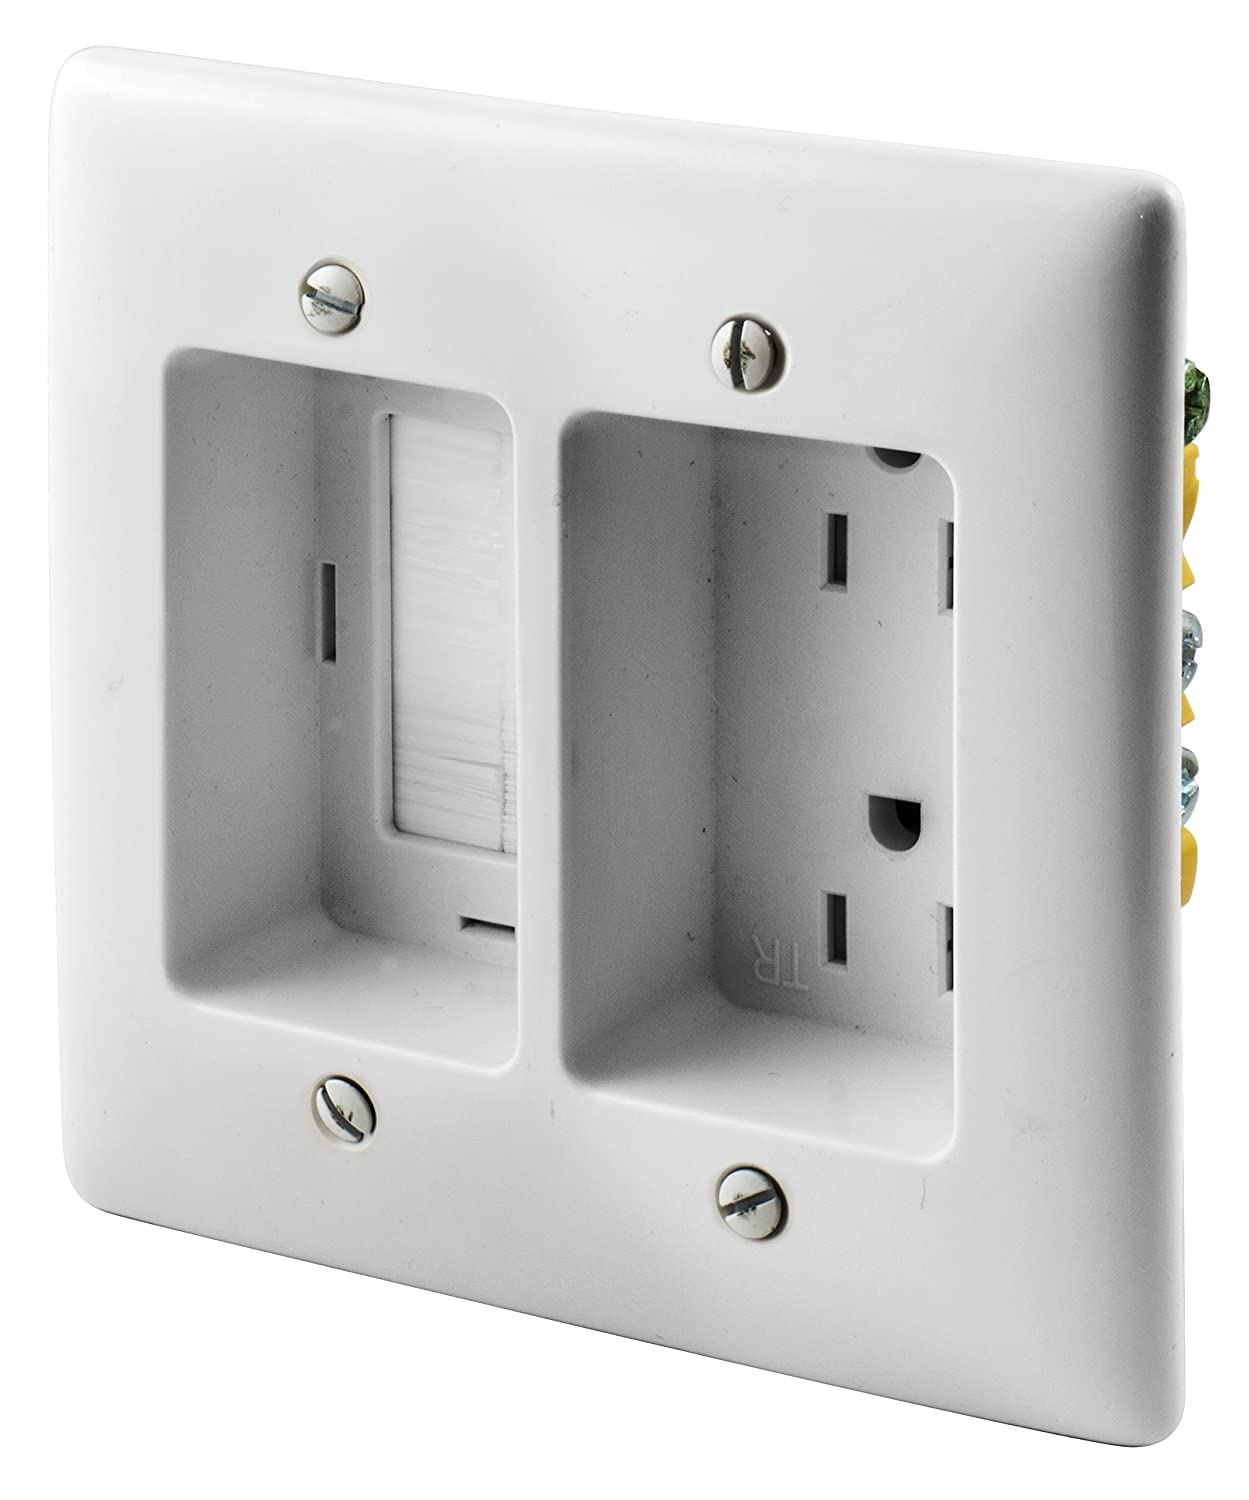 Bryant Electric RR1512W 2-Gang Recessed TV Connection Outlet Plate with 15  Amp 125V Tamper-Resistant Duplex Receptacle with One Pass-Thru Opening, ...